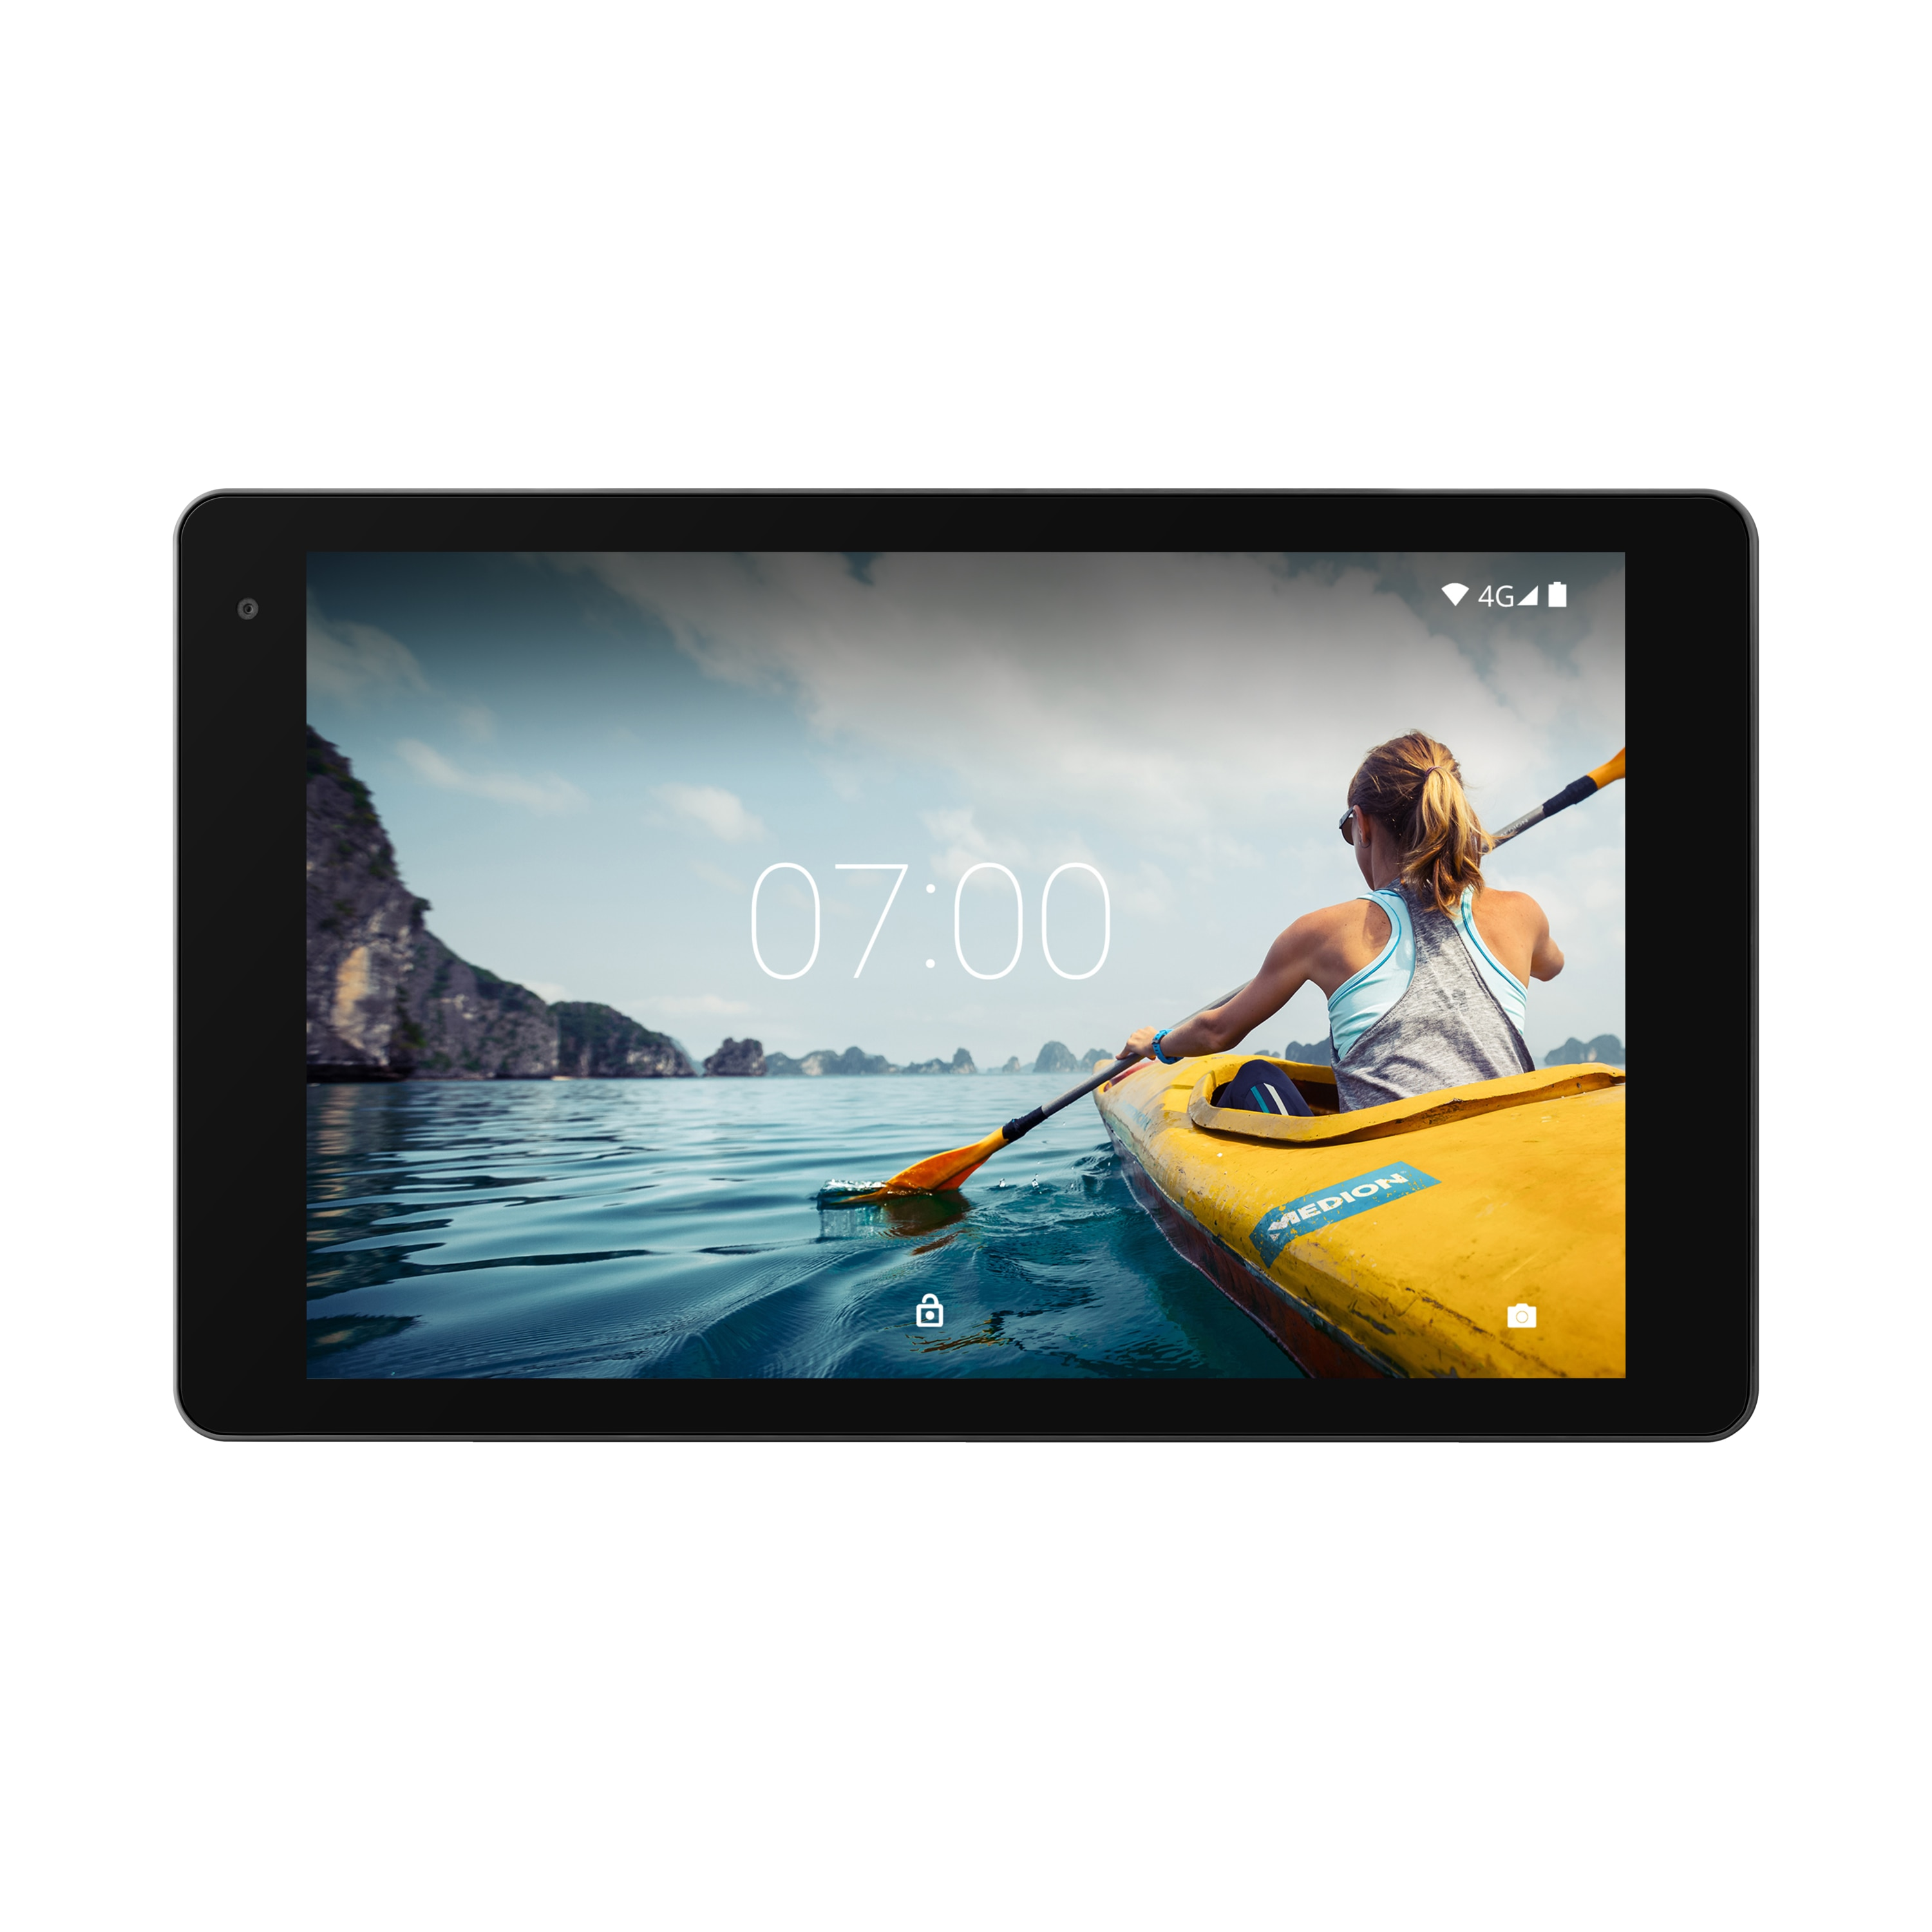 """MEDION® LIFETAB® P10606 Tablet, 25,7 cm (10,1"""") FHD Display, Android™ 7.1.1, 32 GB Speicher, Octa Core Prozessor, LTE, WLAN ac, Quick Charge (B-Ware)"""